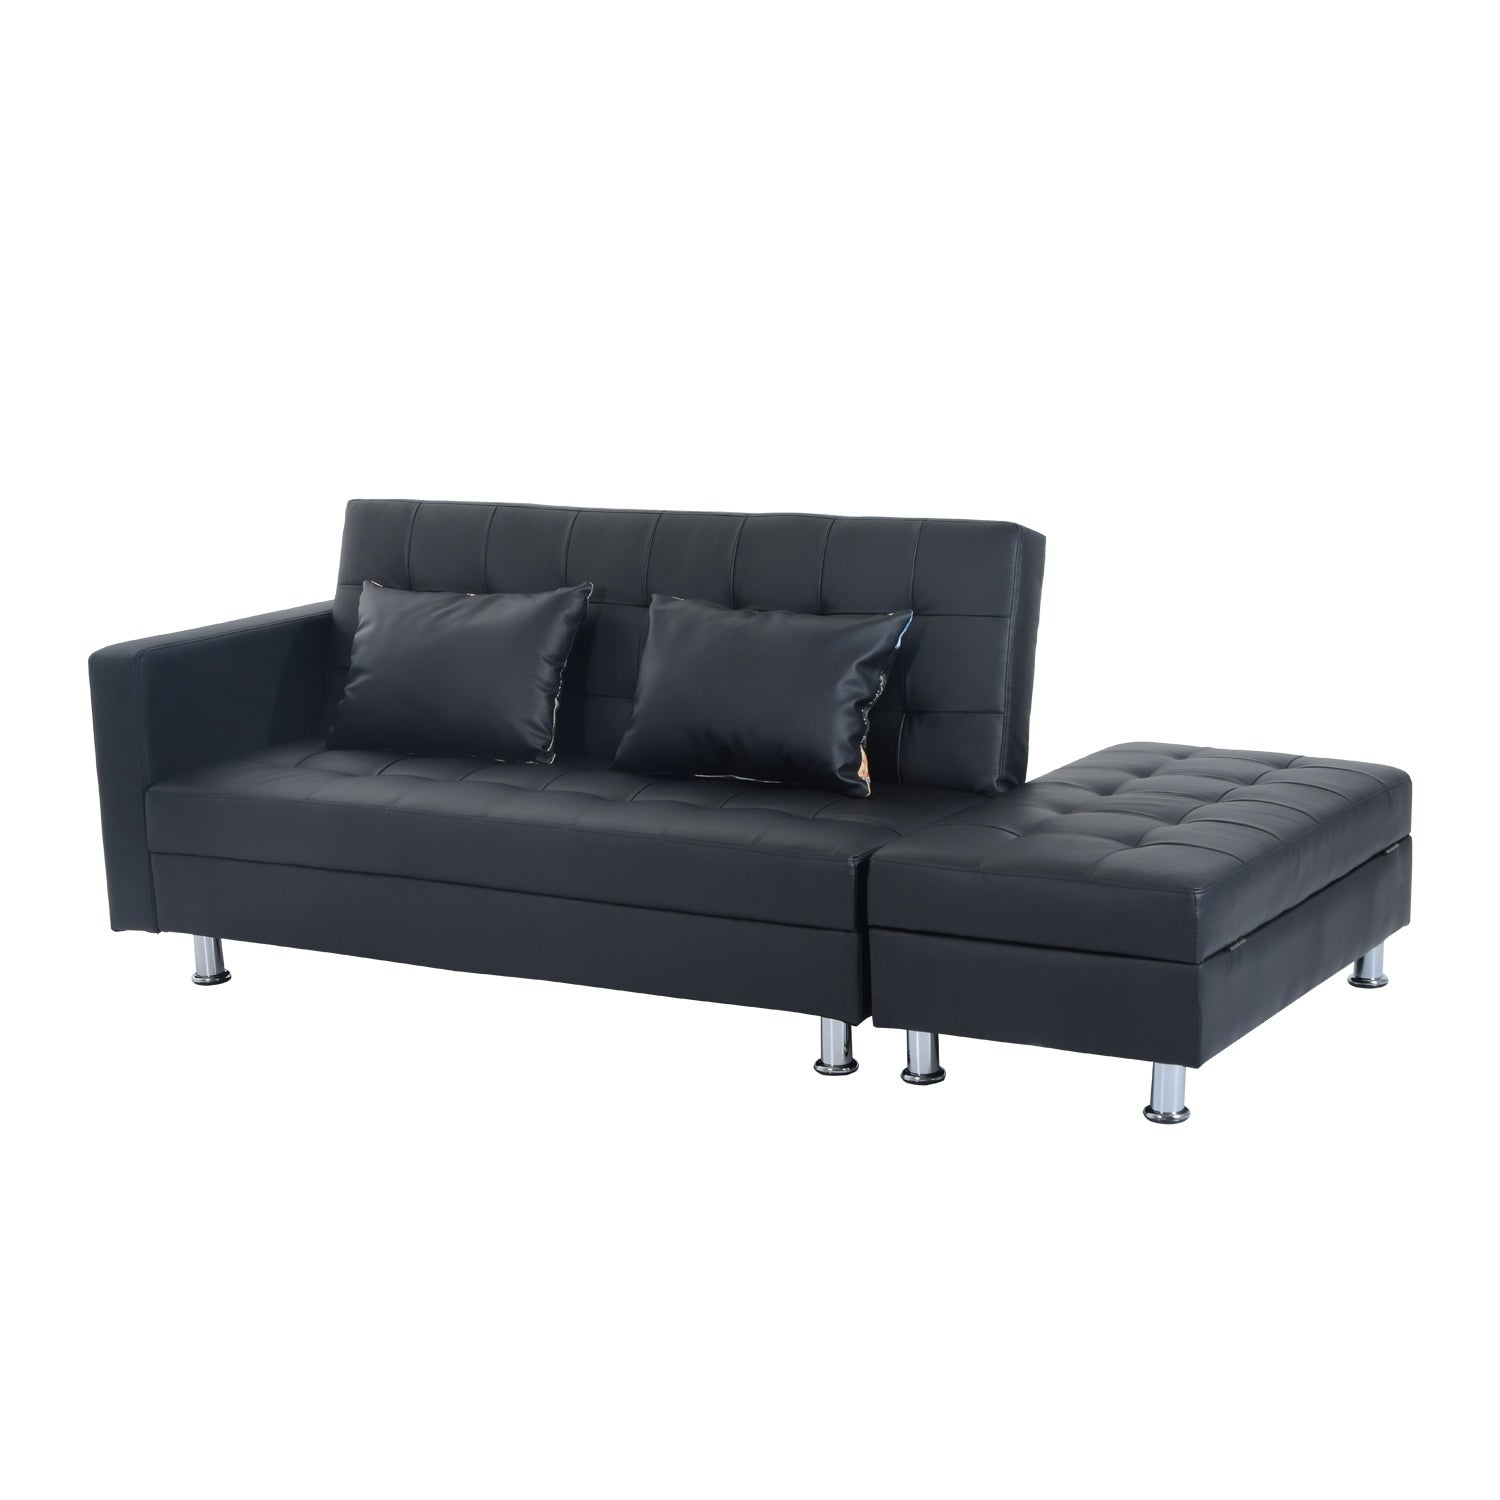 HomCom Faux Leather Convertible Sofa Sleeper Bed W/Storage Ottoman   Free  Shipping Today   Overstock   24142998